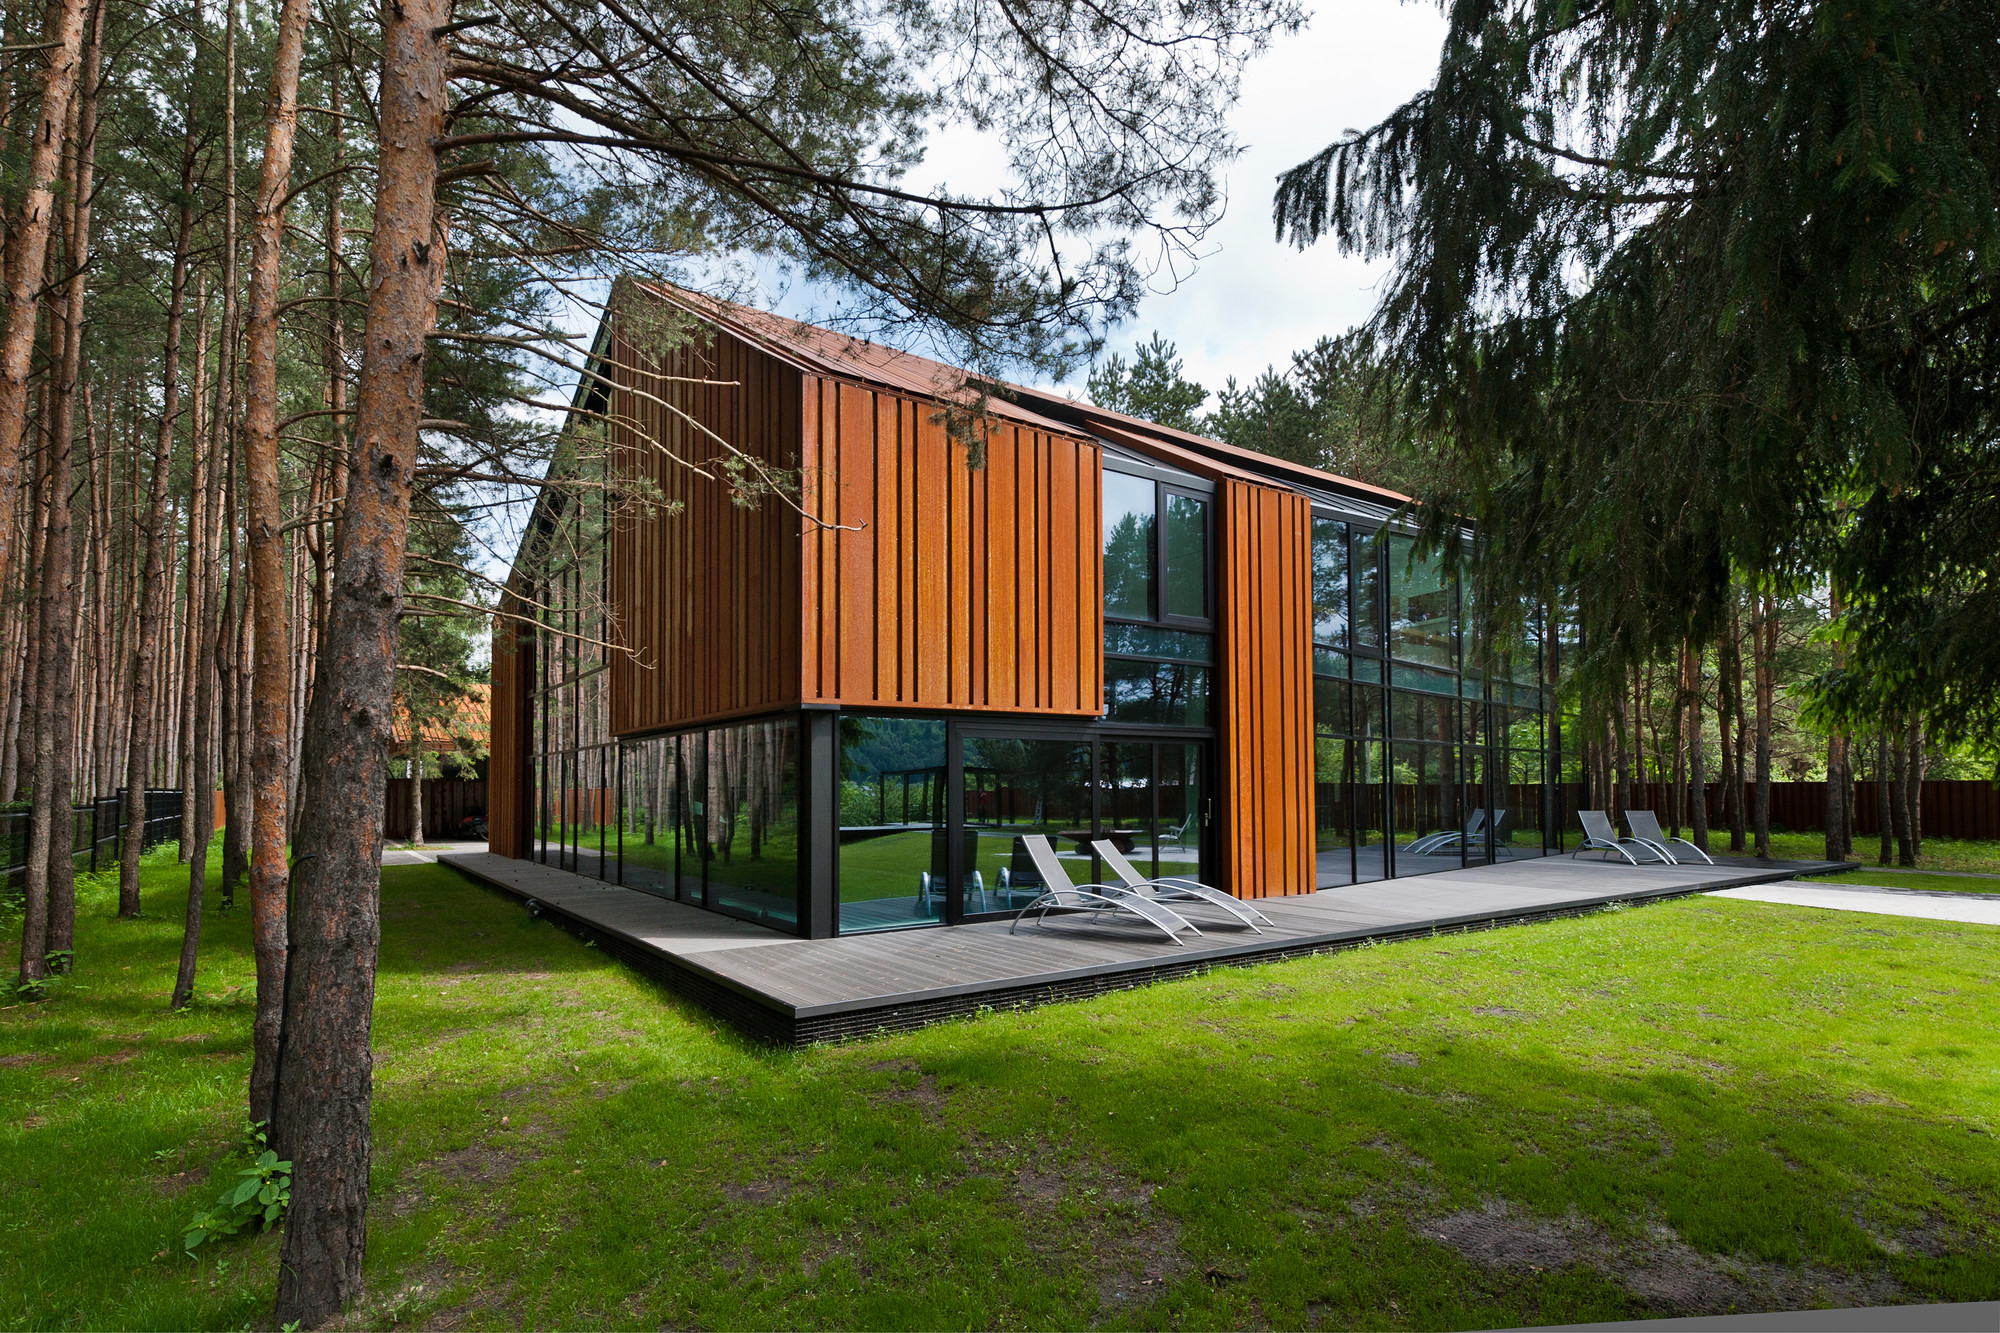 An Autograph Among The Pine Trees ARCHISPEKTRAS ArchDaily